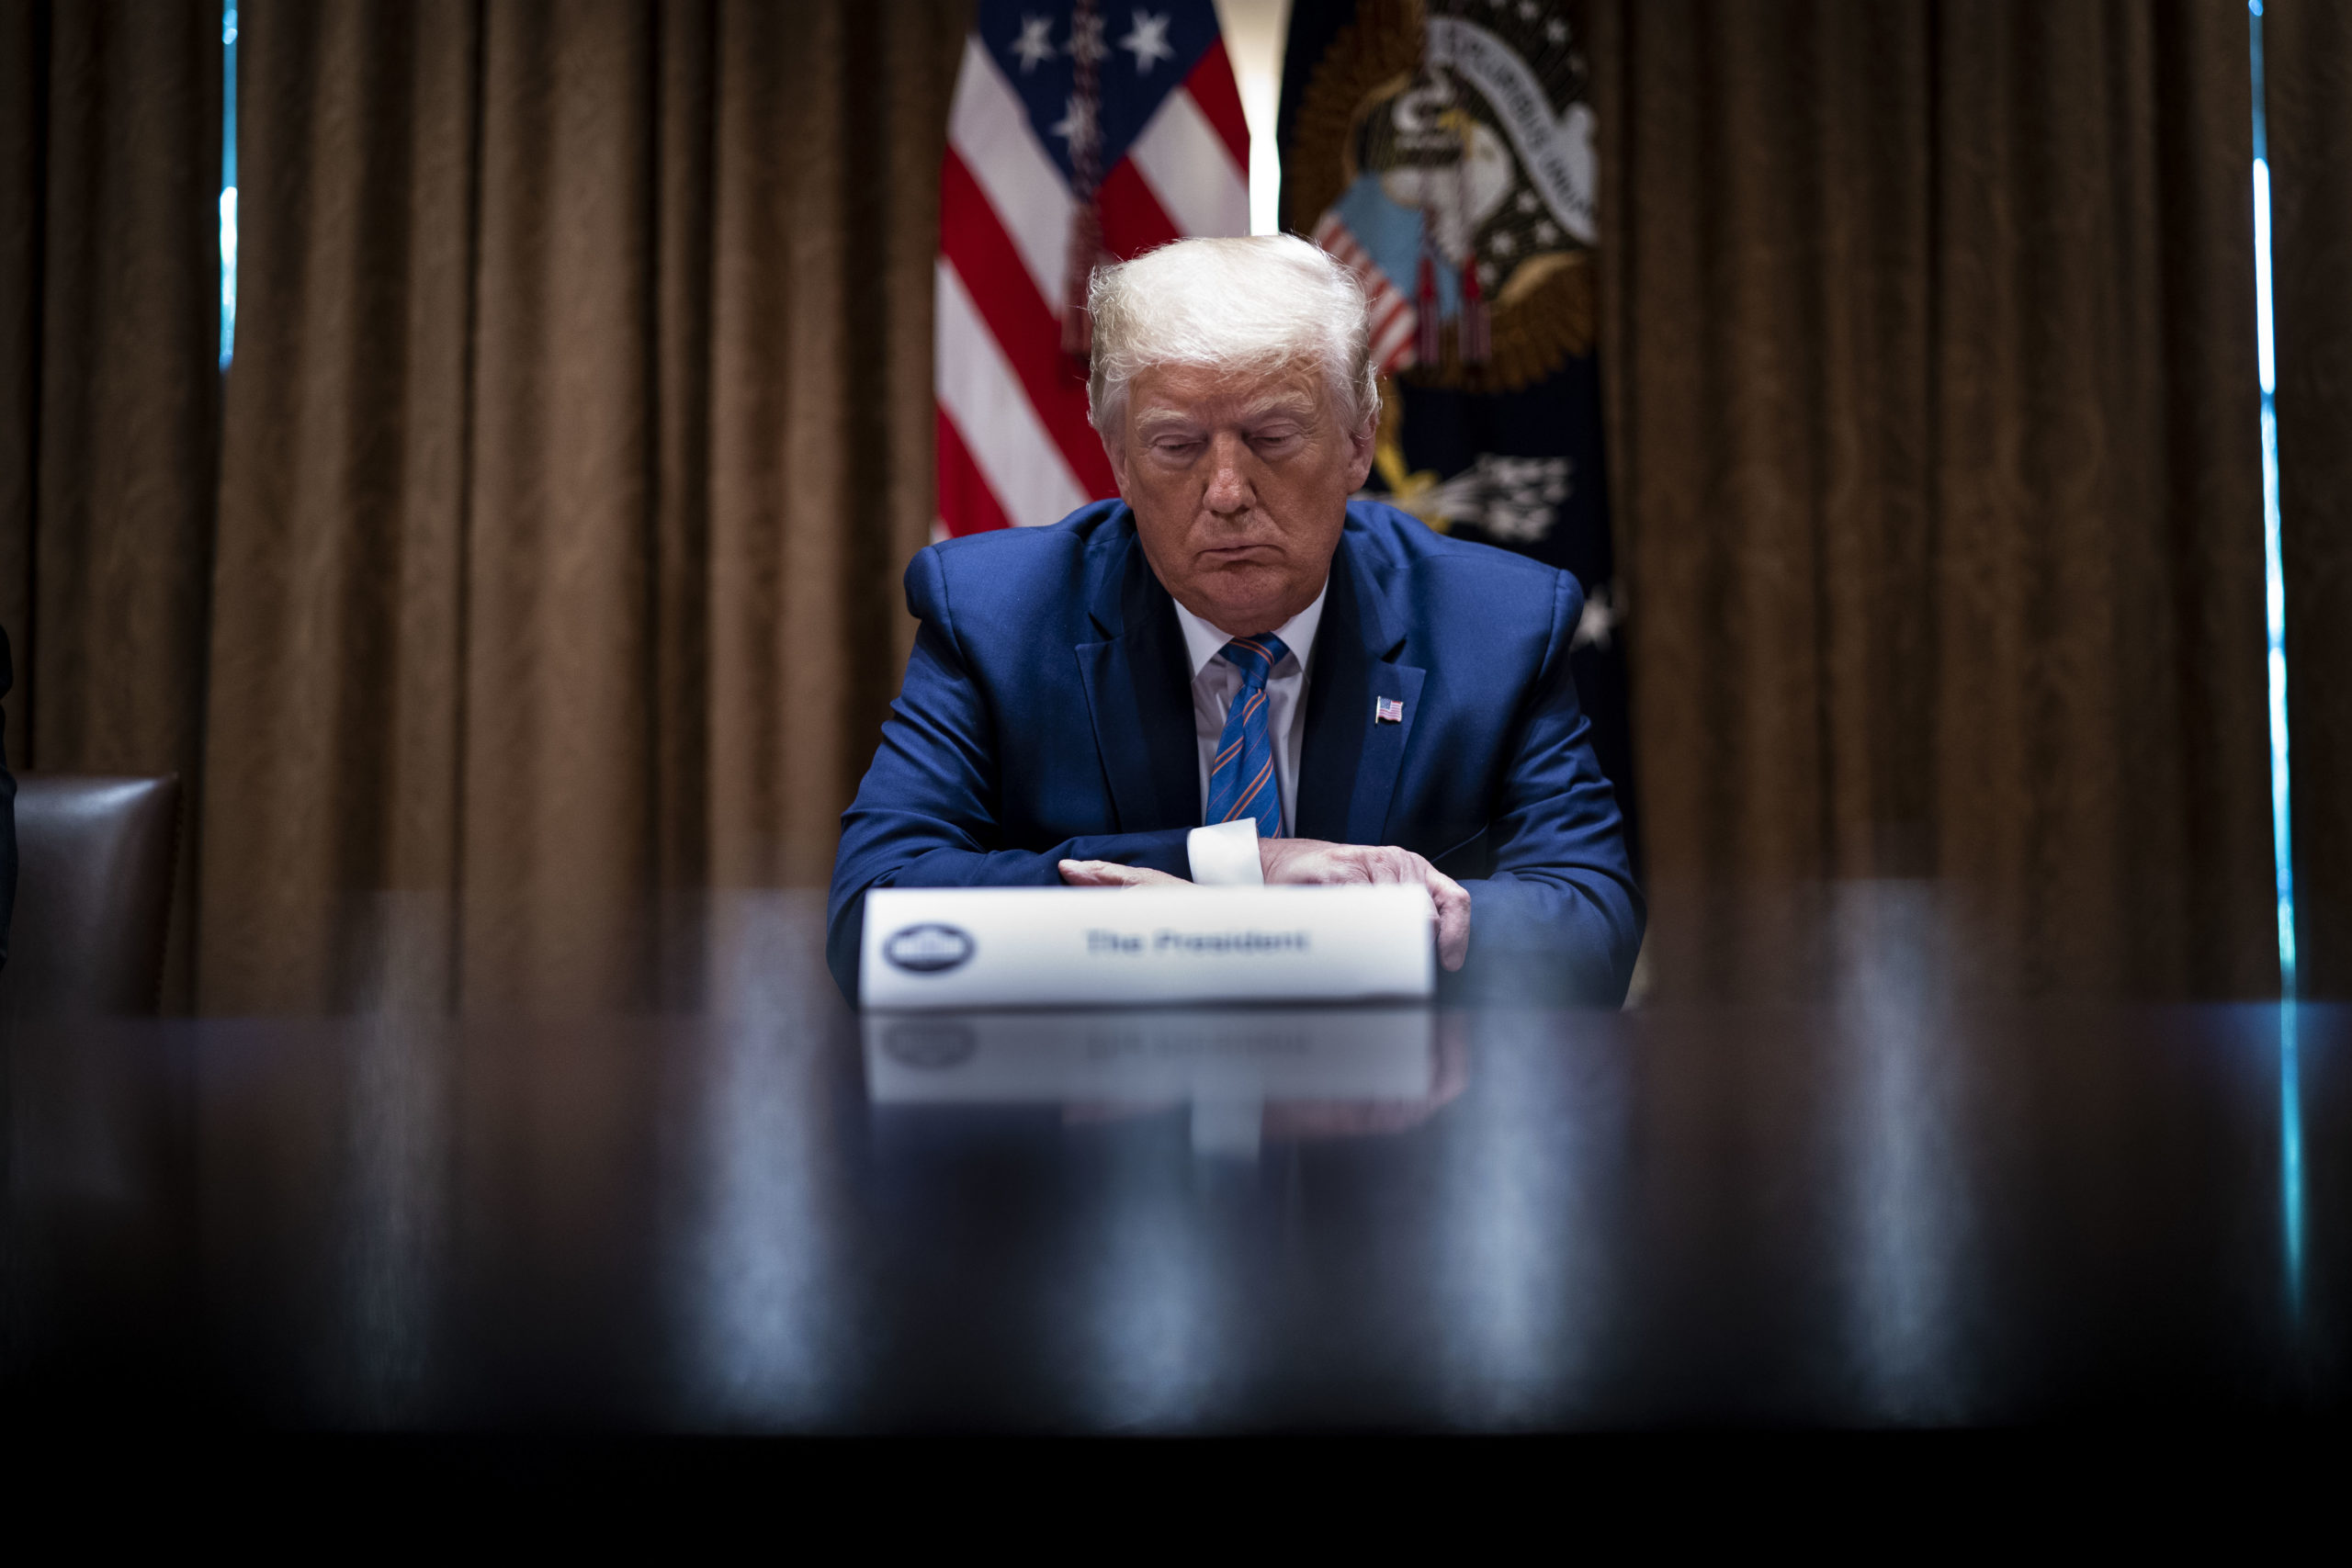 """President Donald Trump listens during a roundtable on """"Fighting for America's Seniors"""" at the Cabinet Room of the White House June 15, 2020 in Washington, DC."""